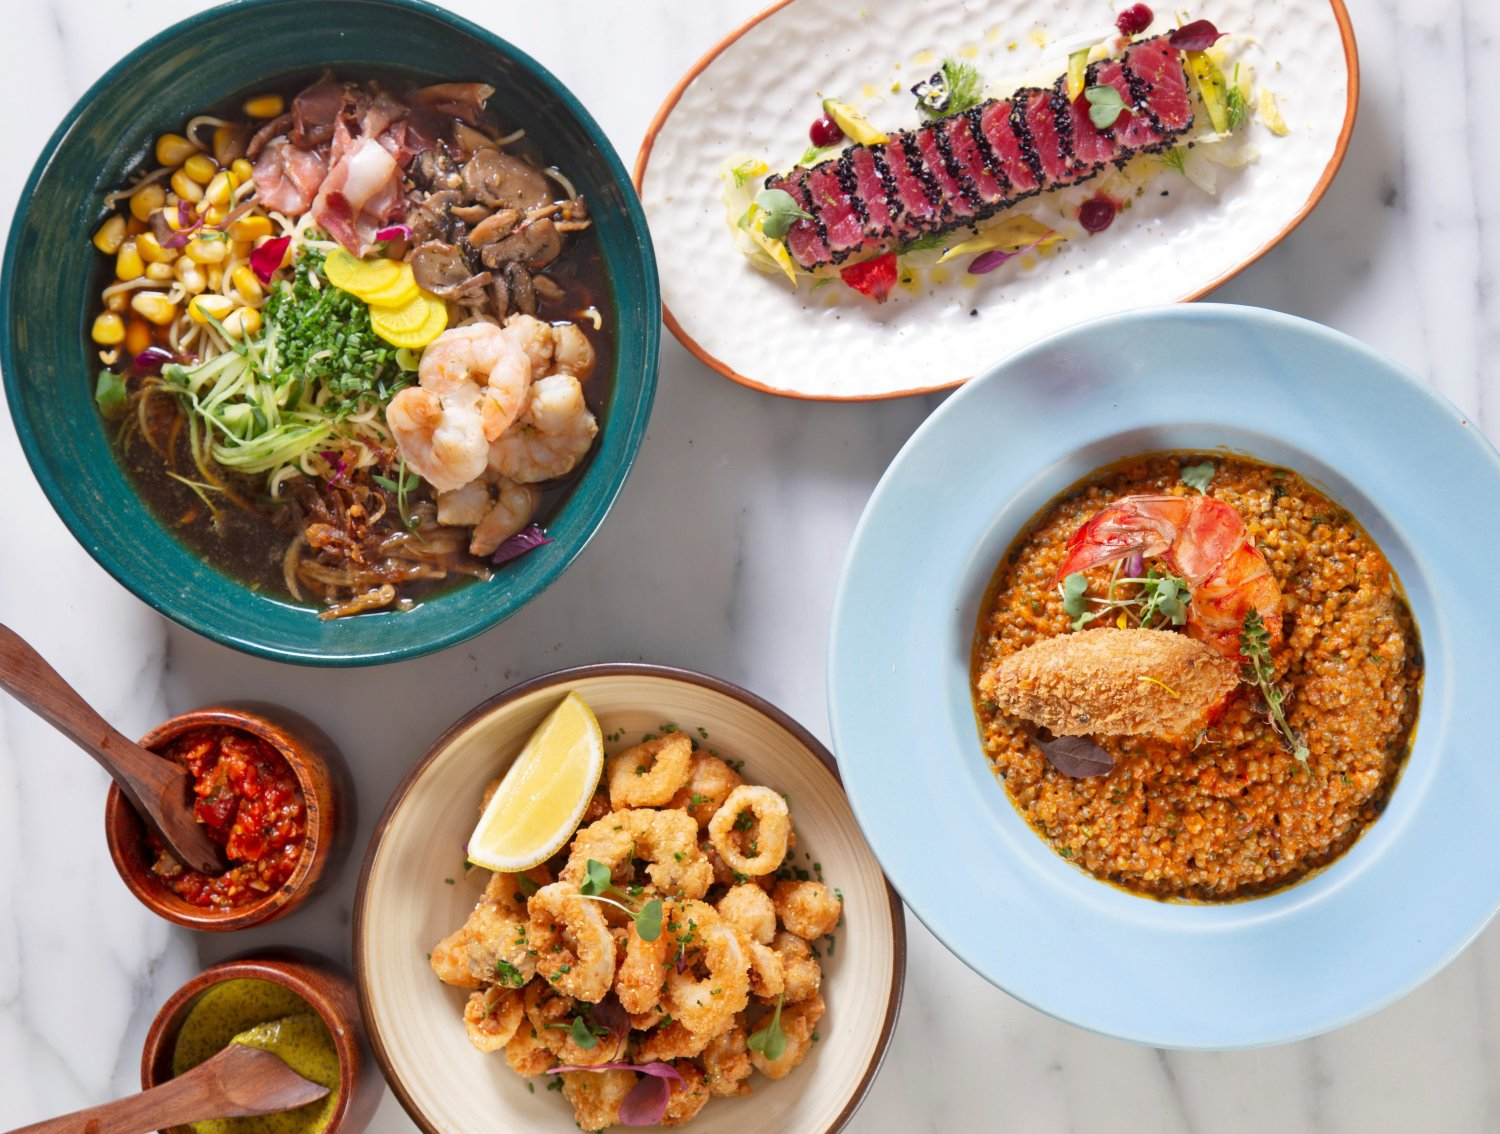 There's a special seafood fiesta at Toast & Tonic this March